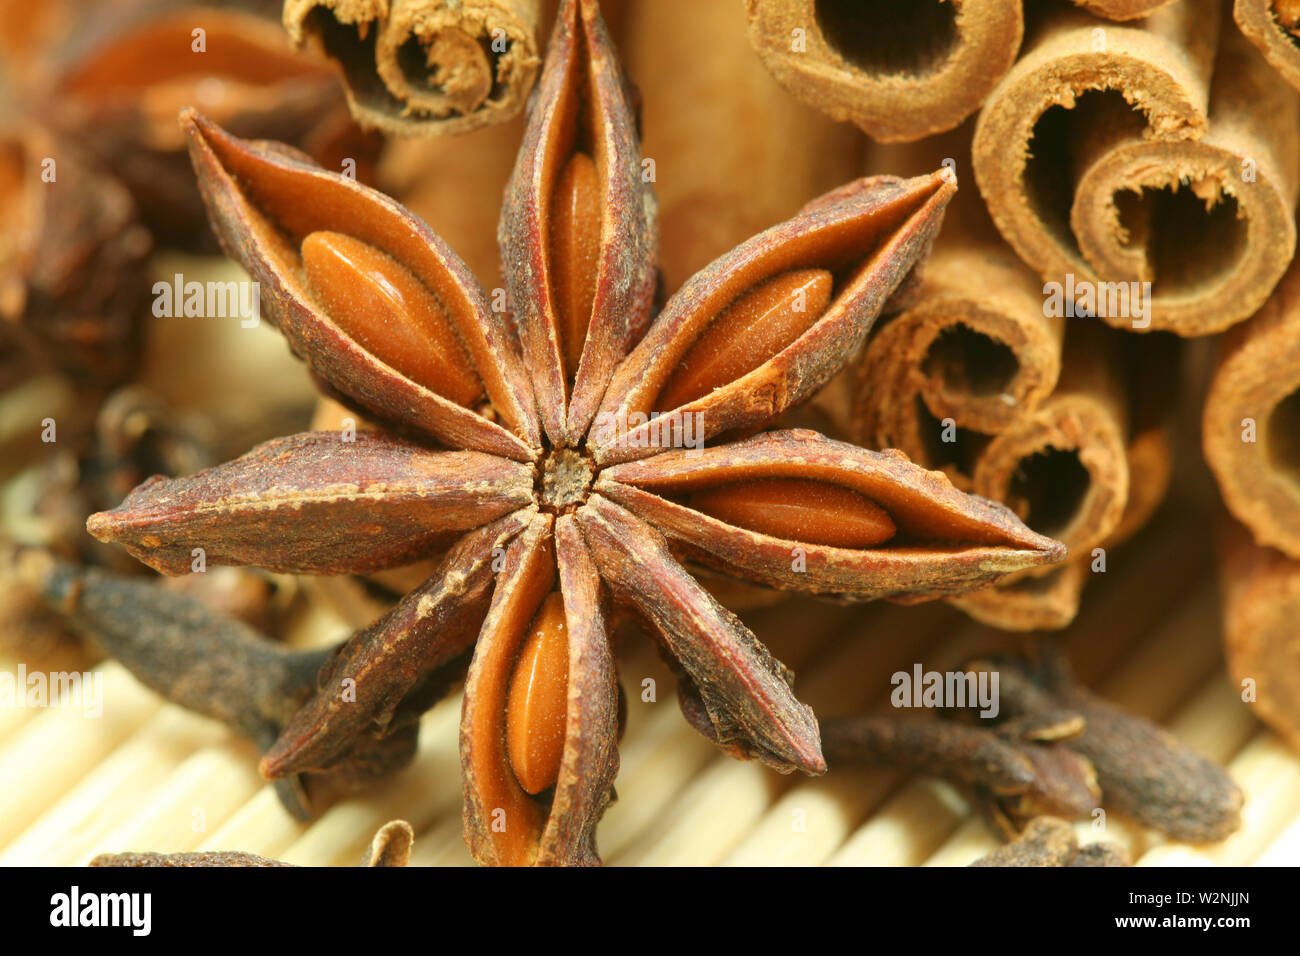 Closeup of Christmas spices - anise star, cloves and cinnamon sticks - Stock Image